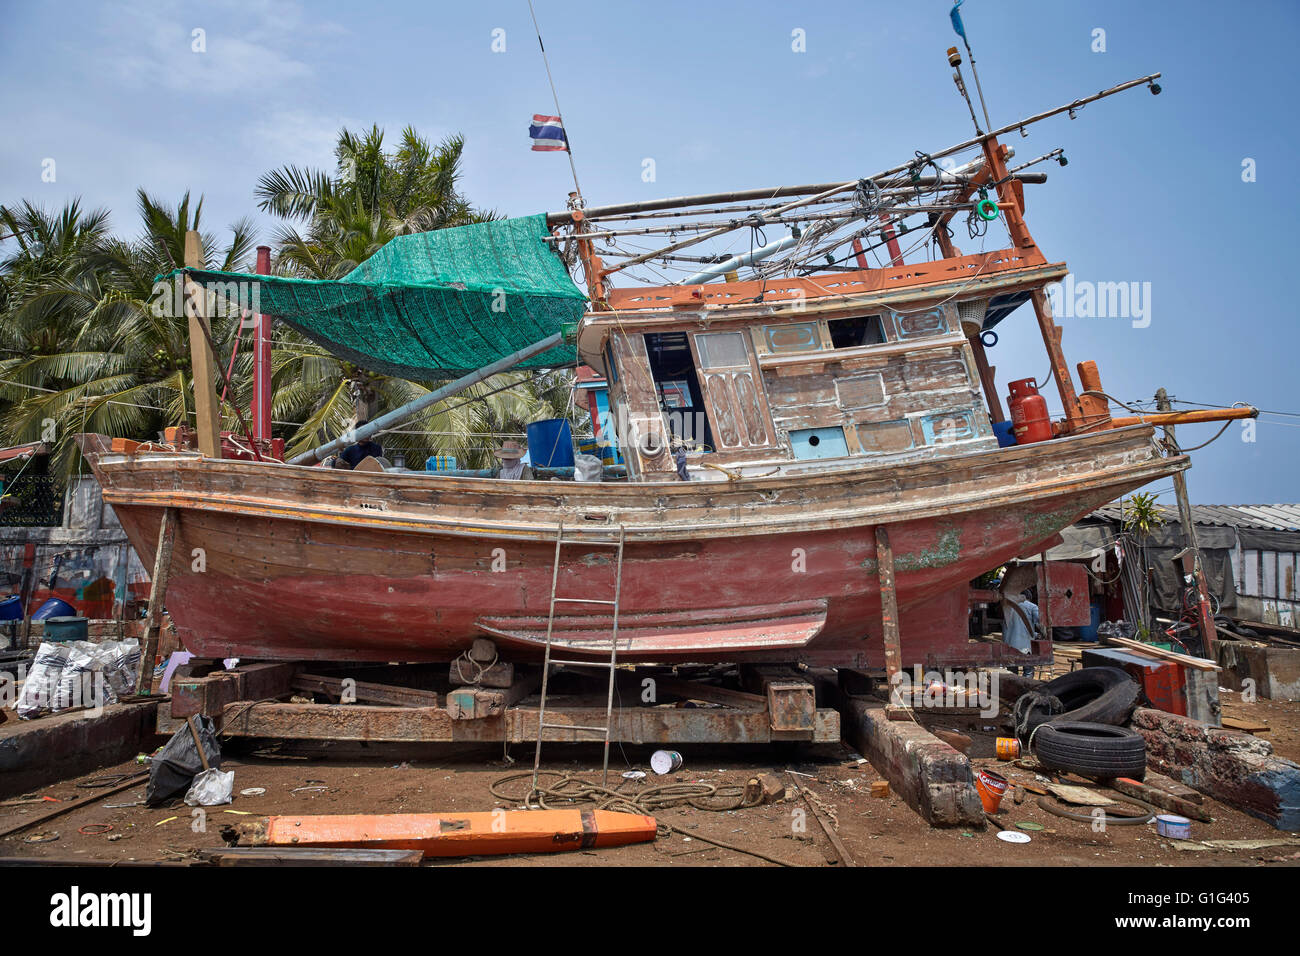 Wooden Boat Repair Stockfotos & Wooden Boat Repair Bilder - Alamy